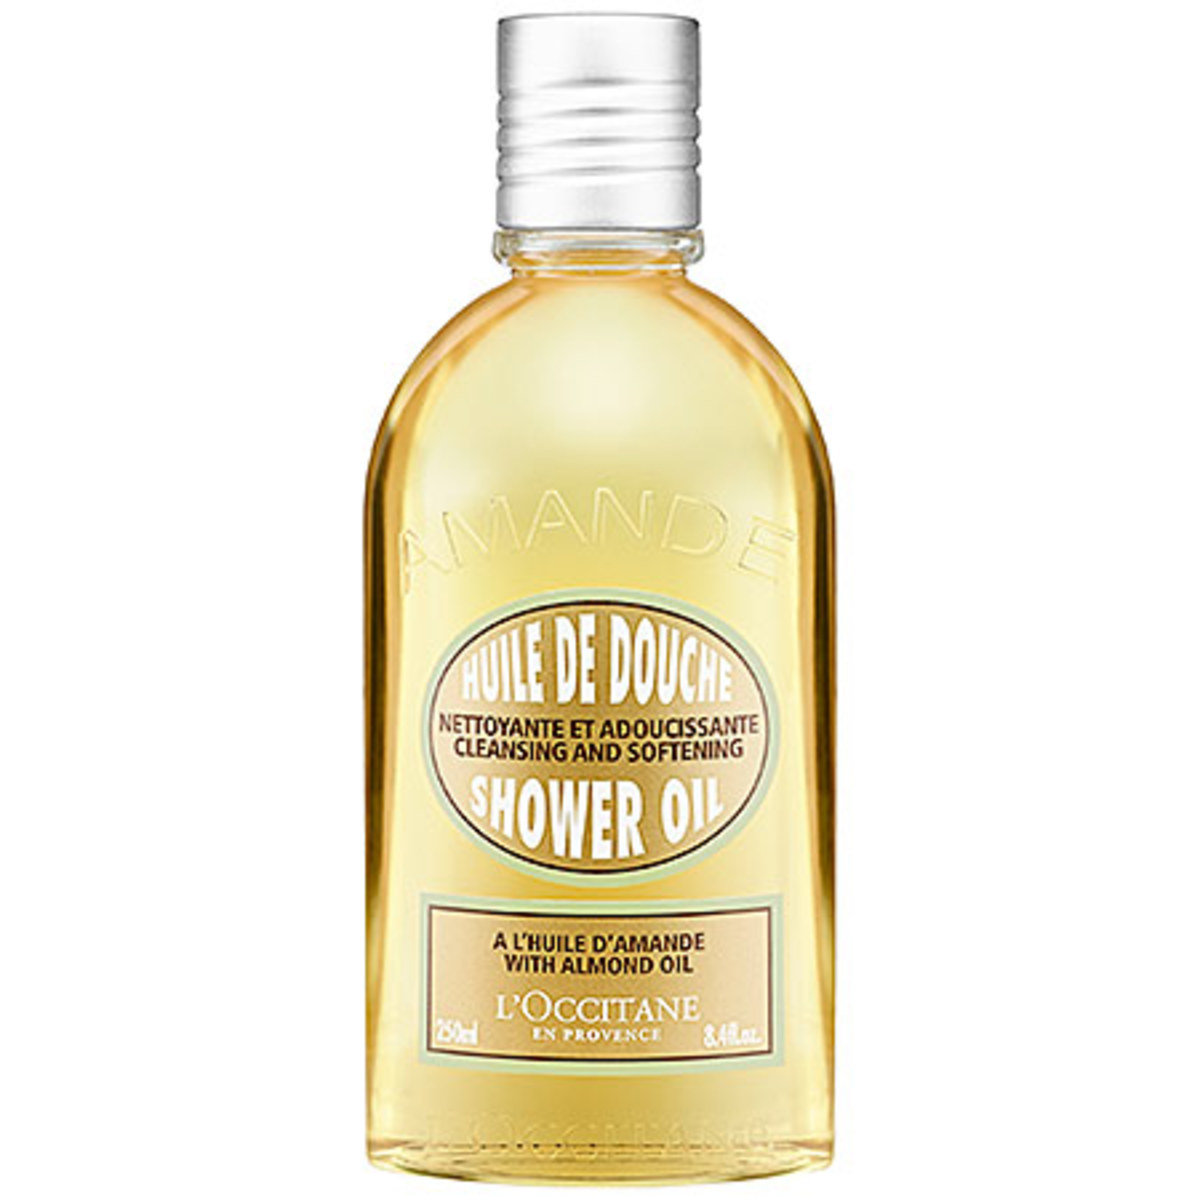 L'Occitane Cleansing and Shower Oil With Almond Oil, $25, available at Sephora.